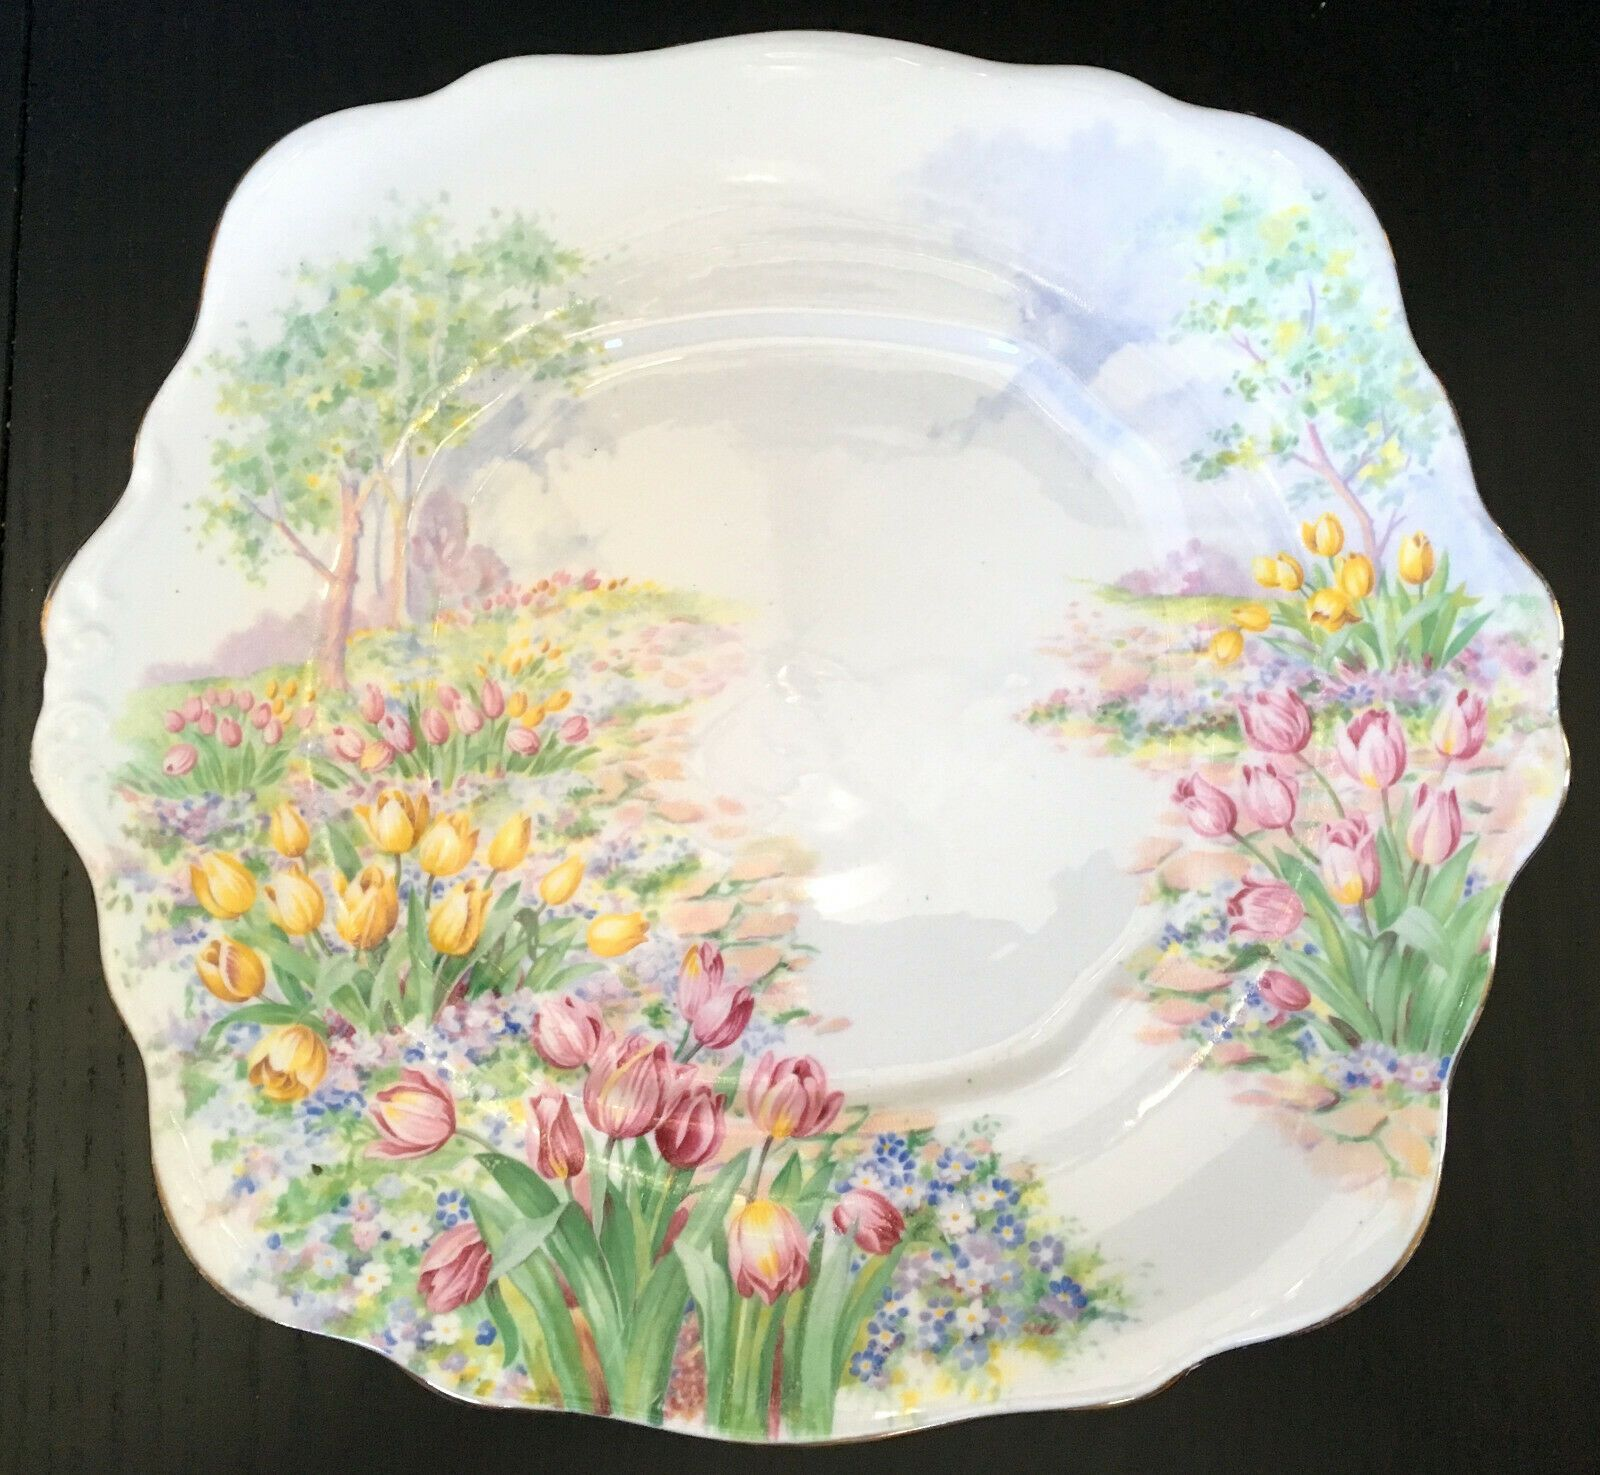 Rare Vintage Royal Albert Tulip Handled Cake Plate #cakeplate #royalalbert #teaware #afternoontea #vintageaesthetic #cabinetdecor #teatime #diningroomdecor #kitchendecor #homedecorative #decorativeart  #teacupscollection #kitchendecorideas